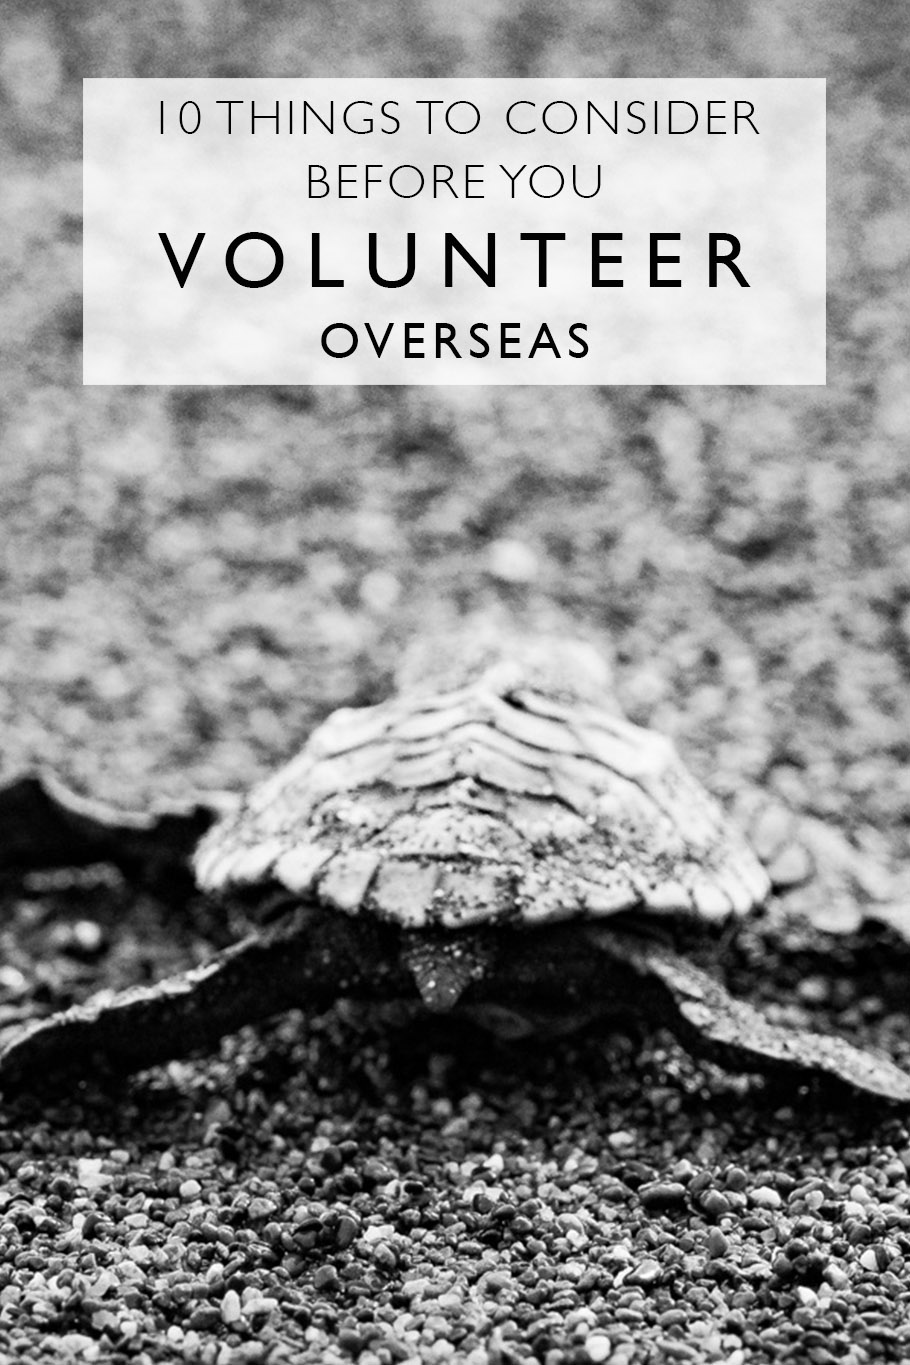 10 Things To Consider Before Volunteering Overseas | Voluntourism | Sustainable and Ethical Travel